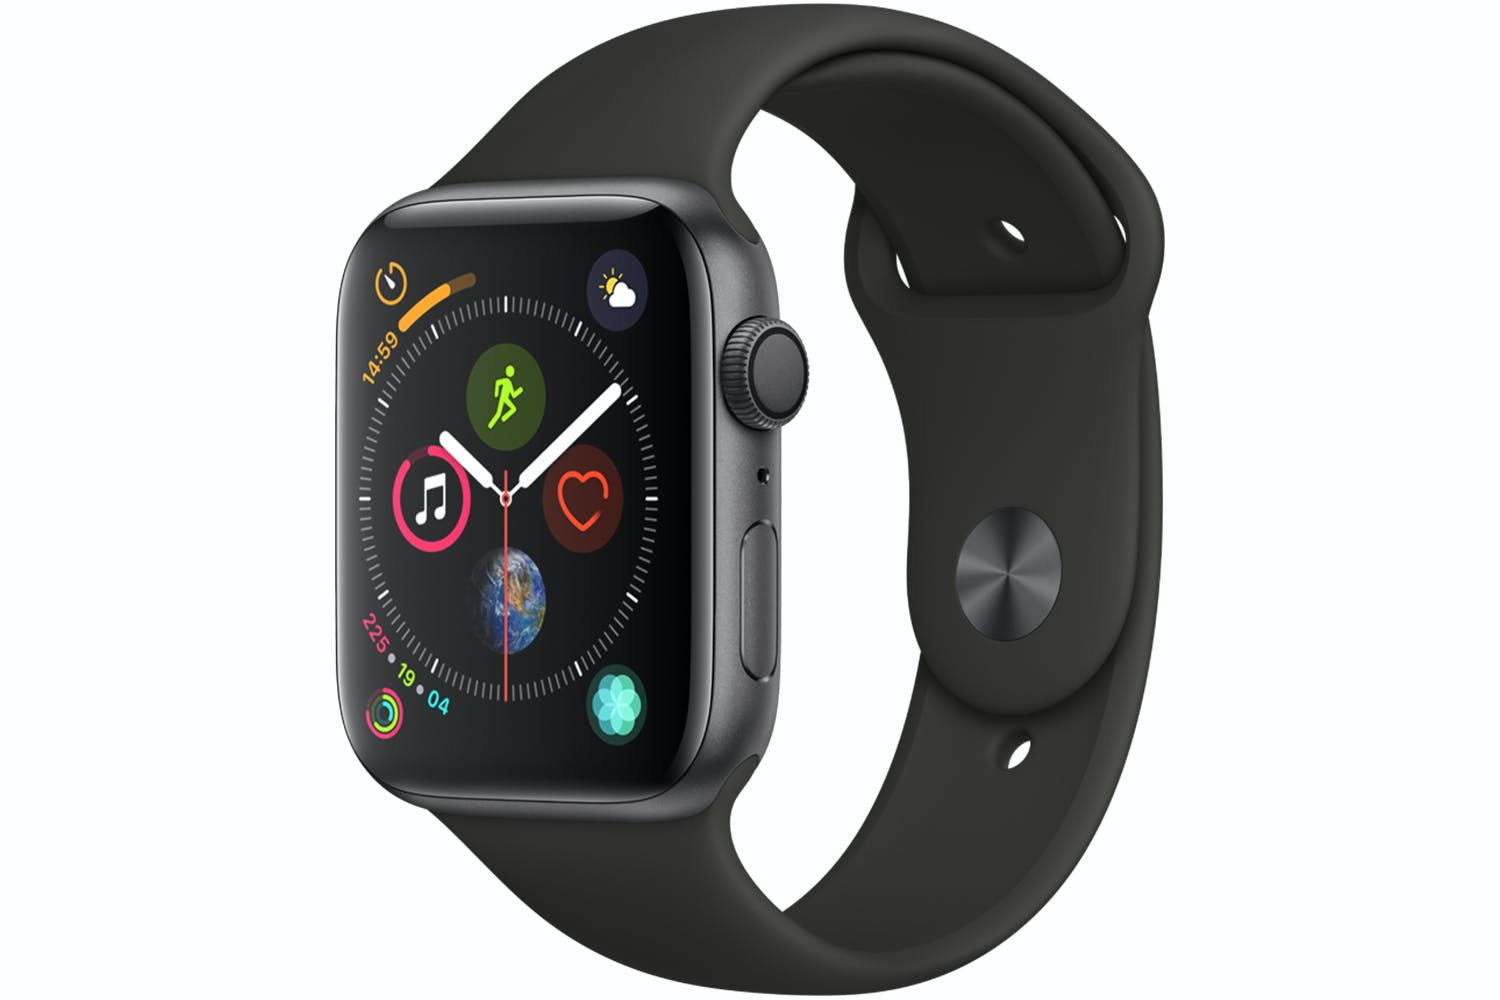 4124b4f4c3a7 Apple Watch Series 4 Space Grey Case with Black Sport Band